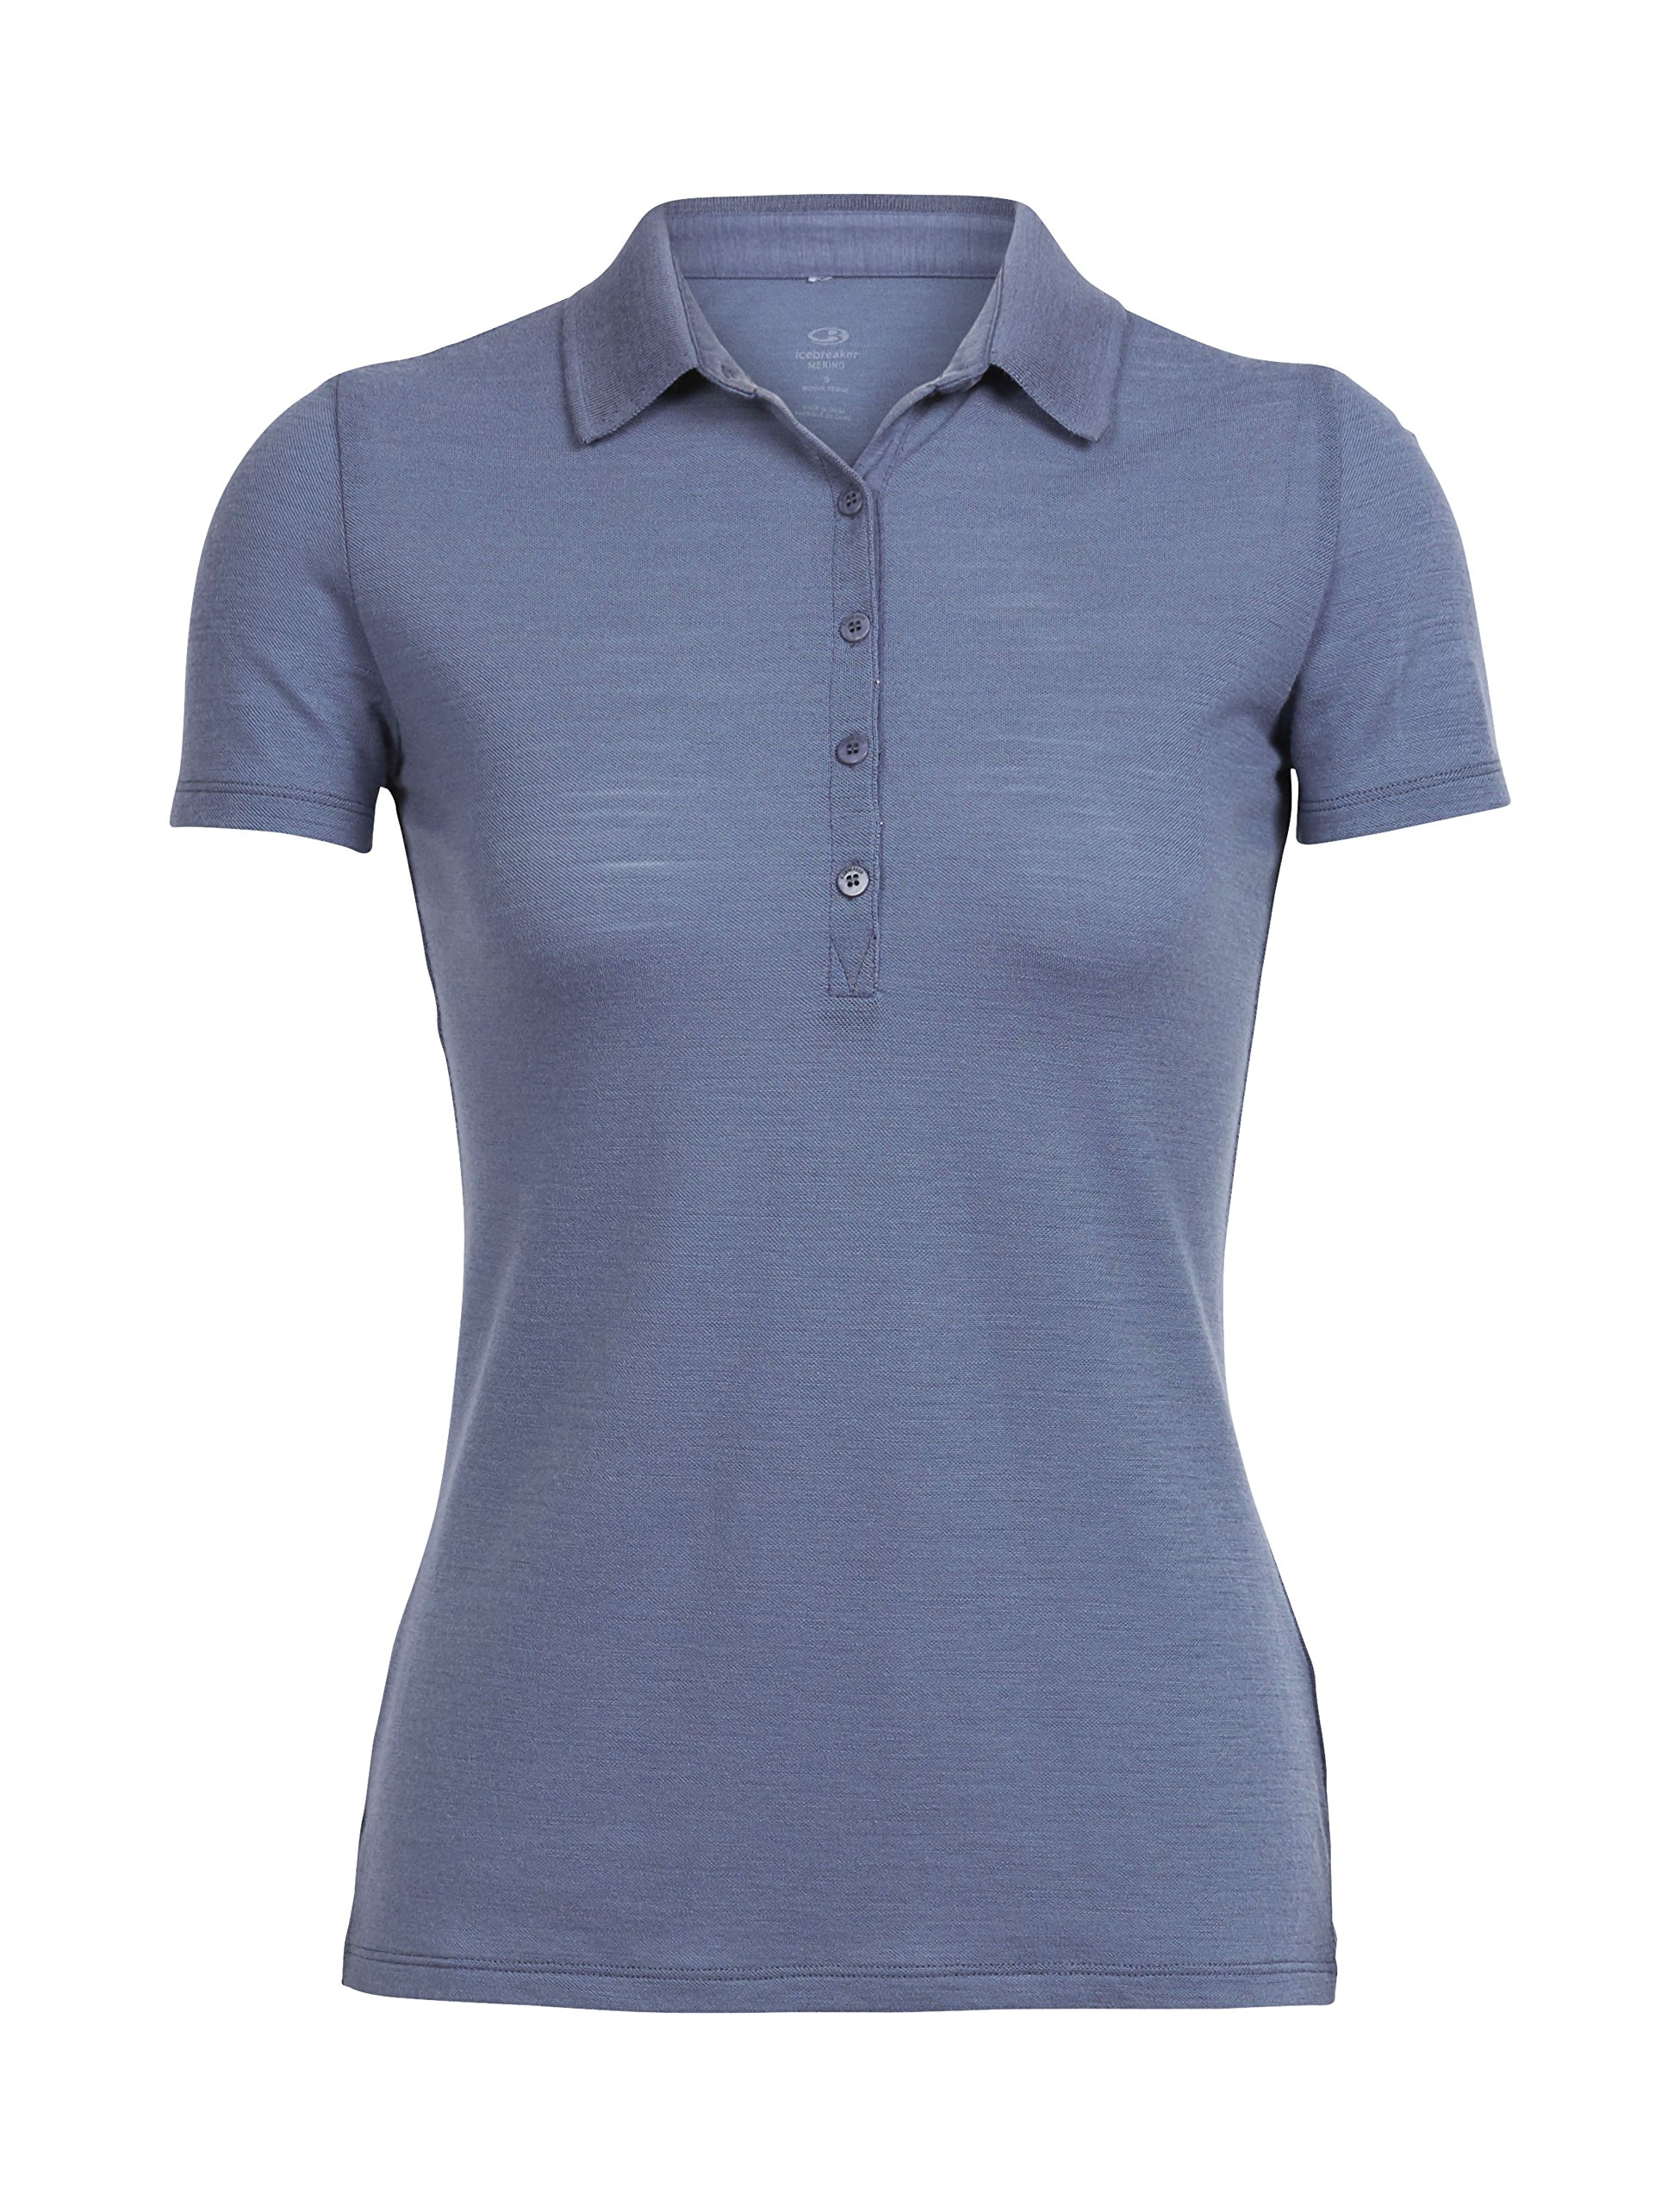 Icebreaker Merino Women's Tech Lite Short Sleeve Polo Tee, Gumtree, Large